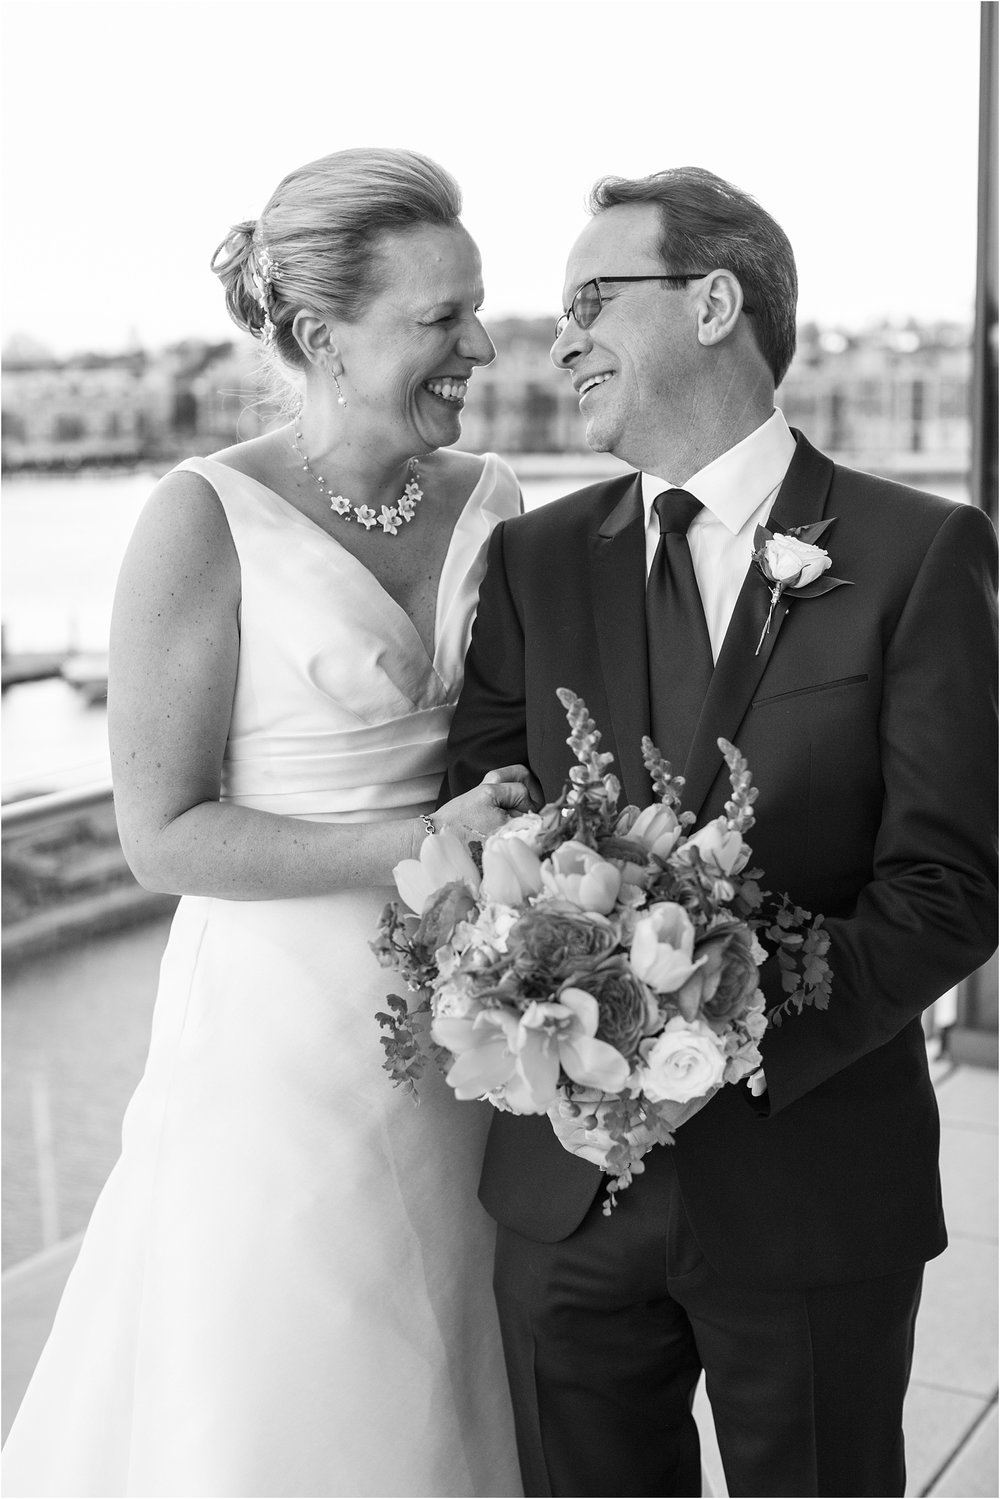 Dukehart Wedding Baltimore Legg Mason Wedding Living Radiant Photography photos_0079.jpg